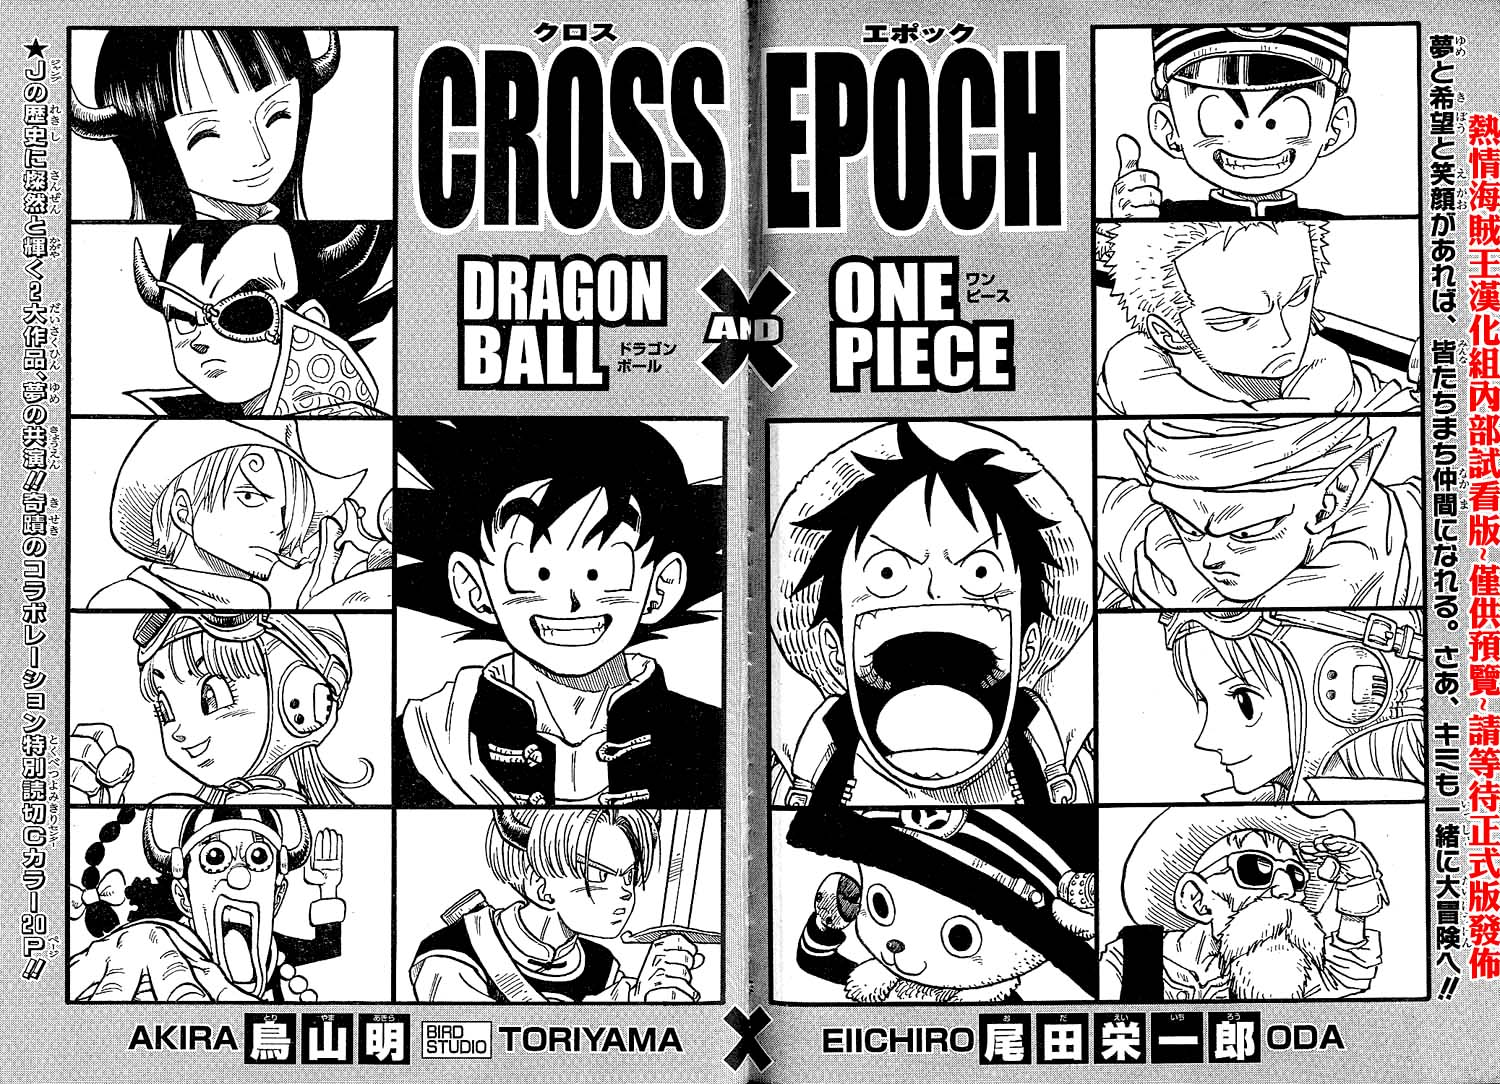 CROSS EPOCH